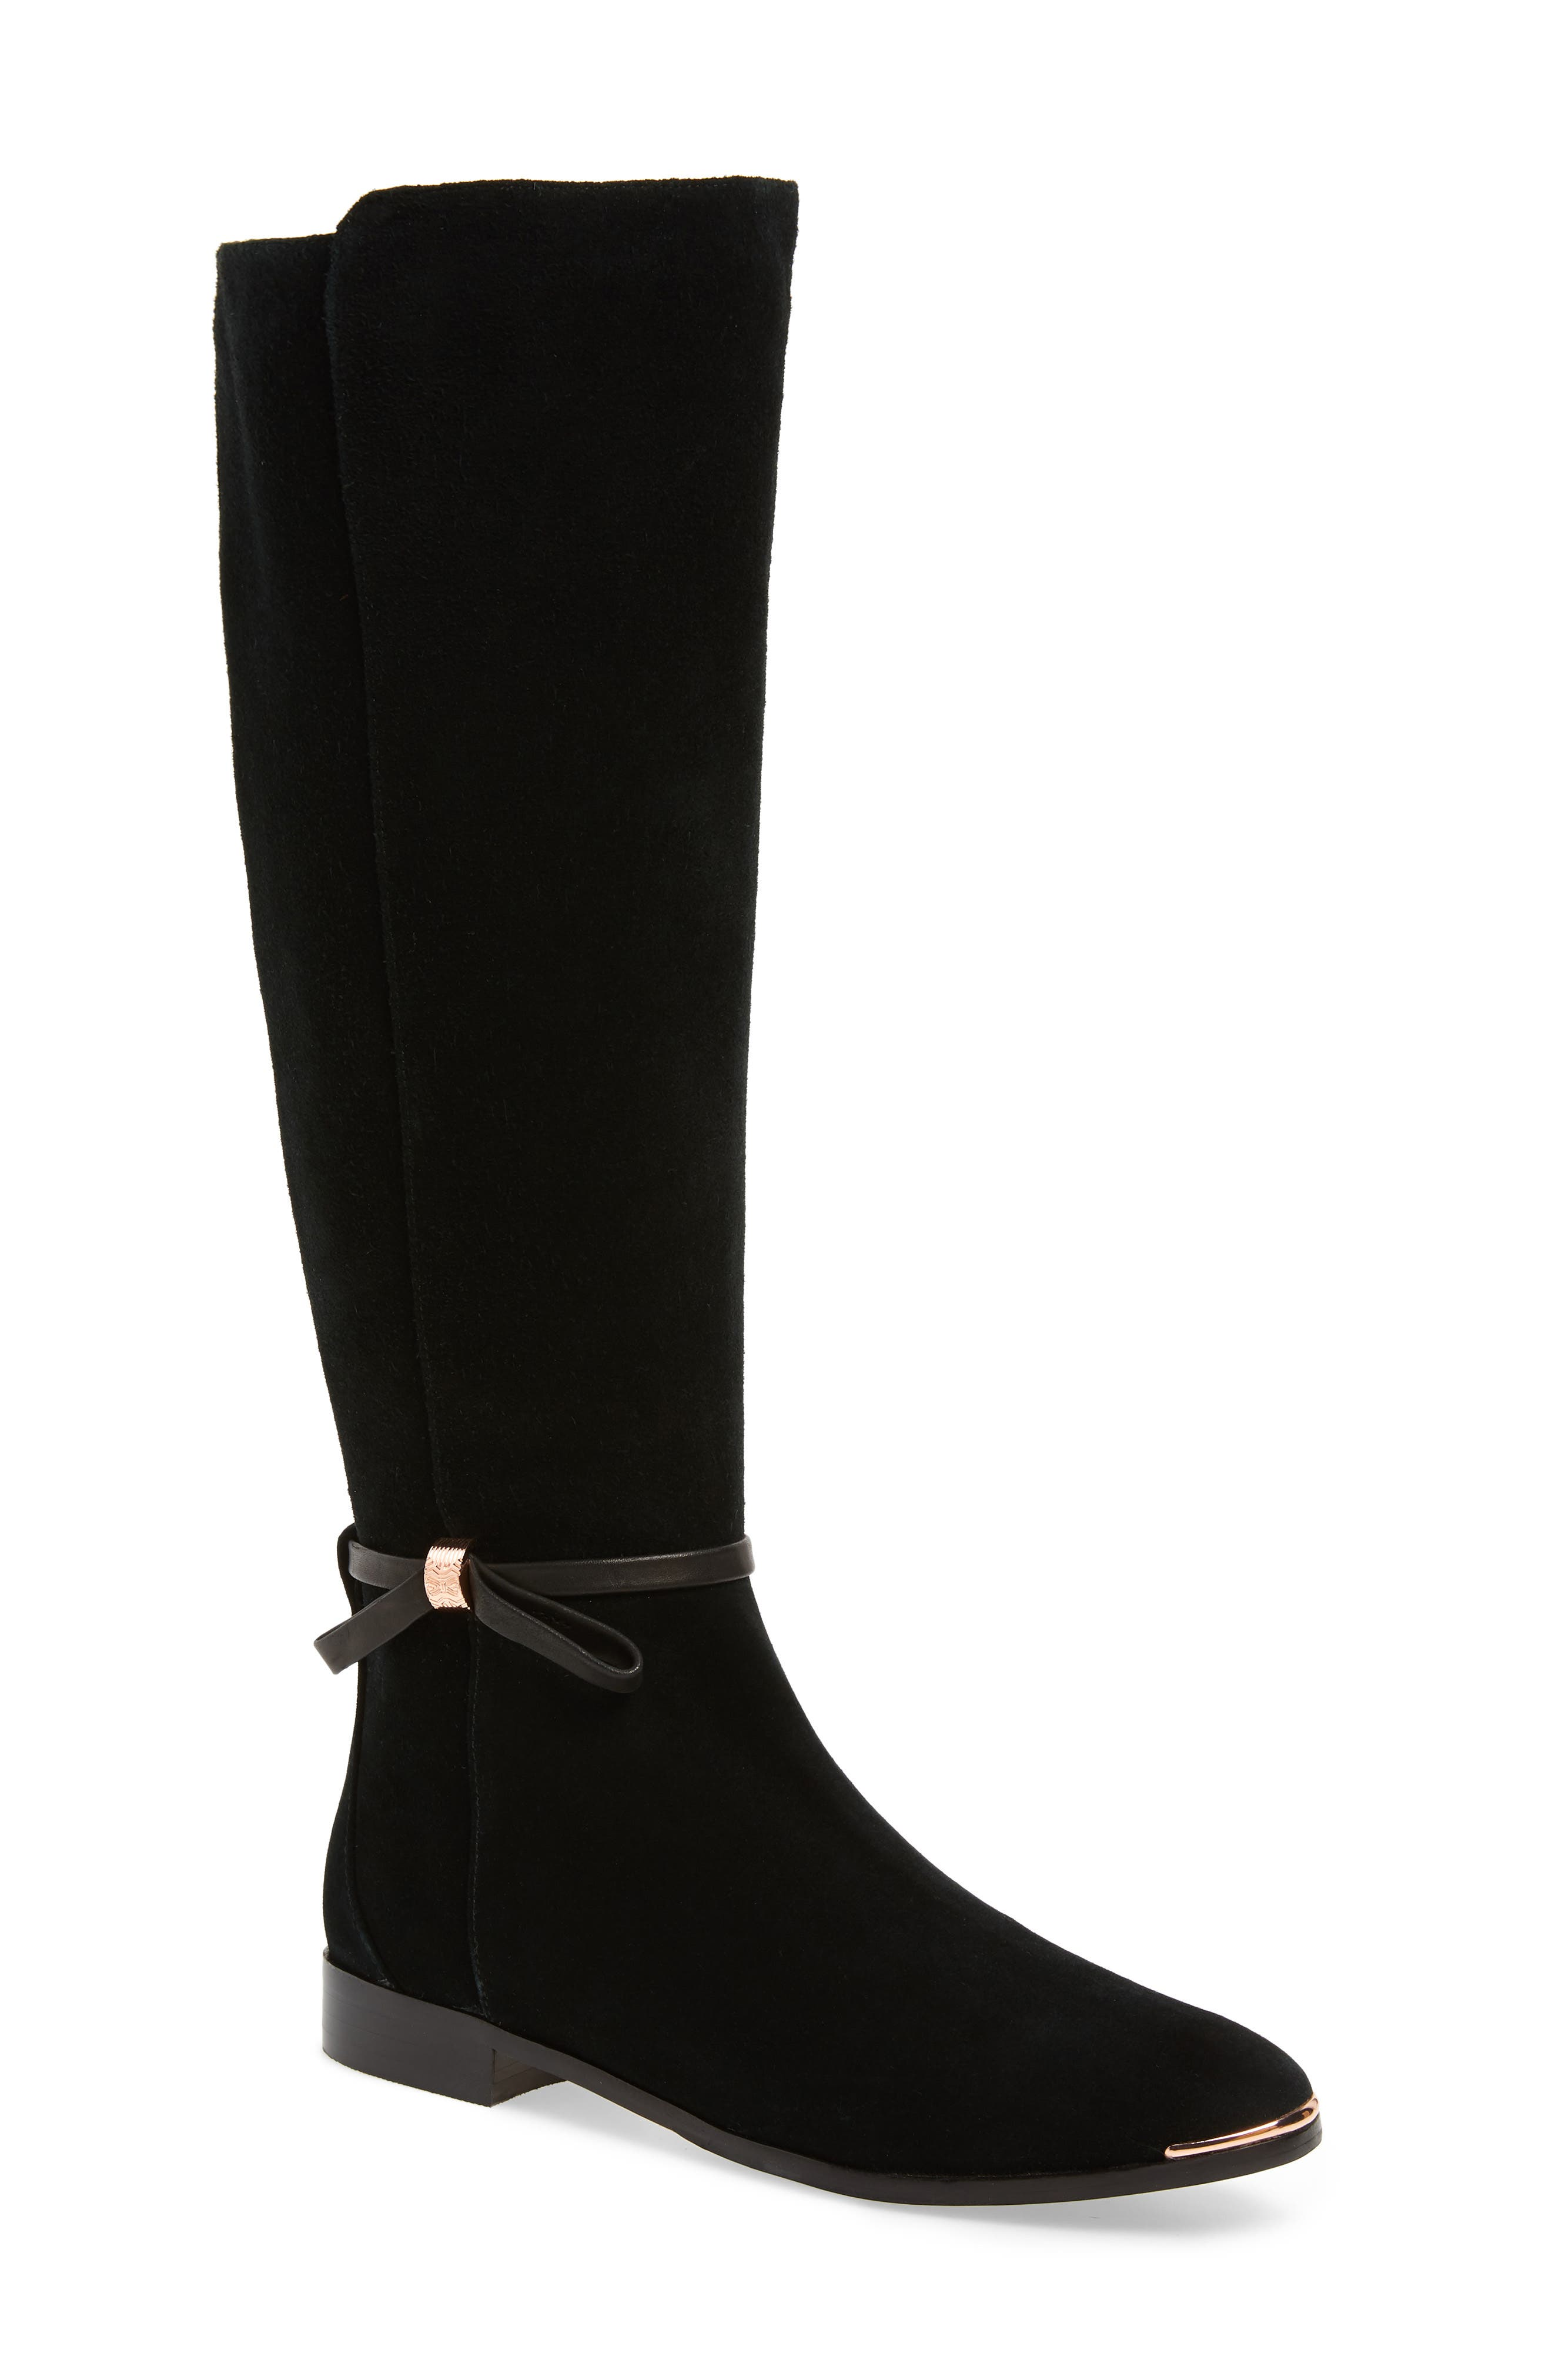 TED BAKER LONDON, Lykla Knee High Boot, Main thumbnail 1, color, BLACK SUEDE